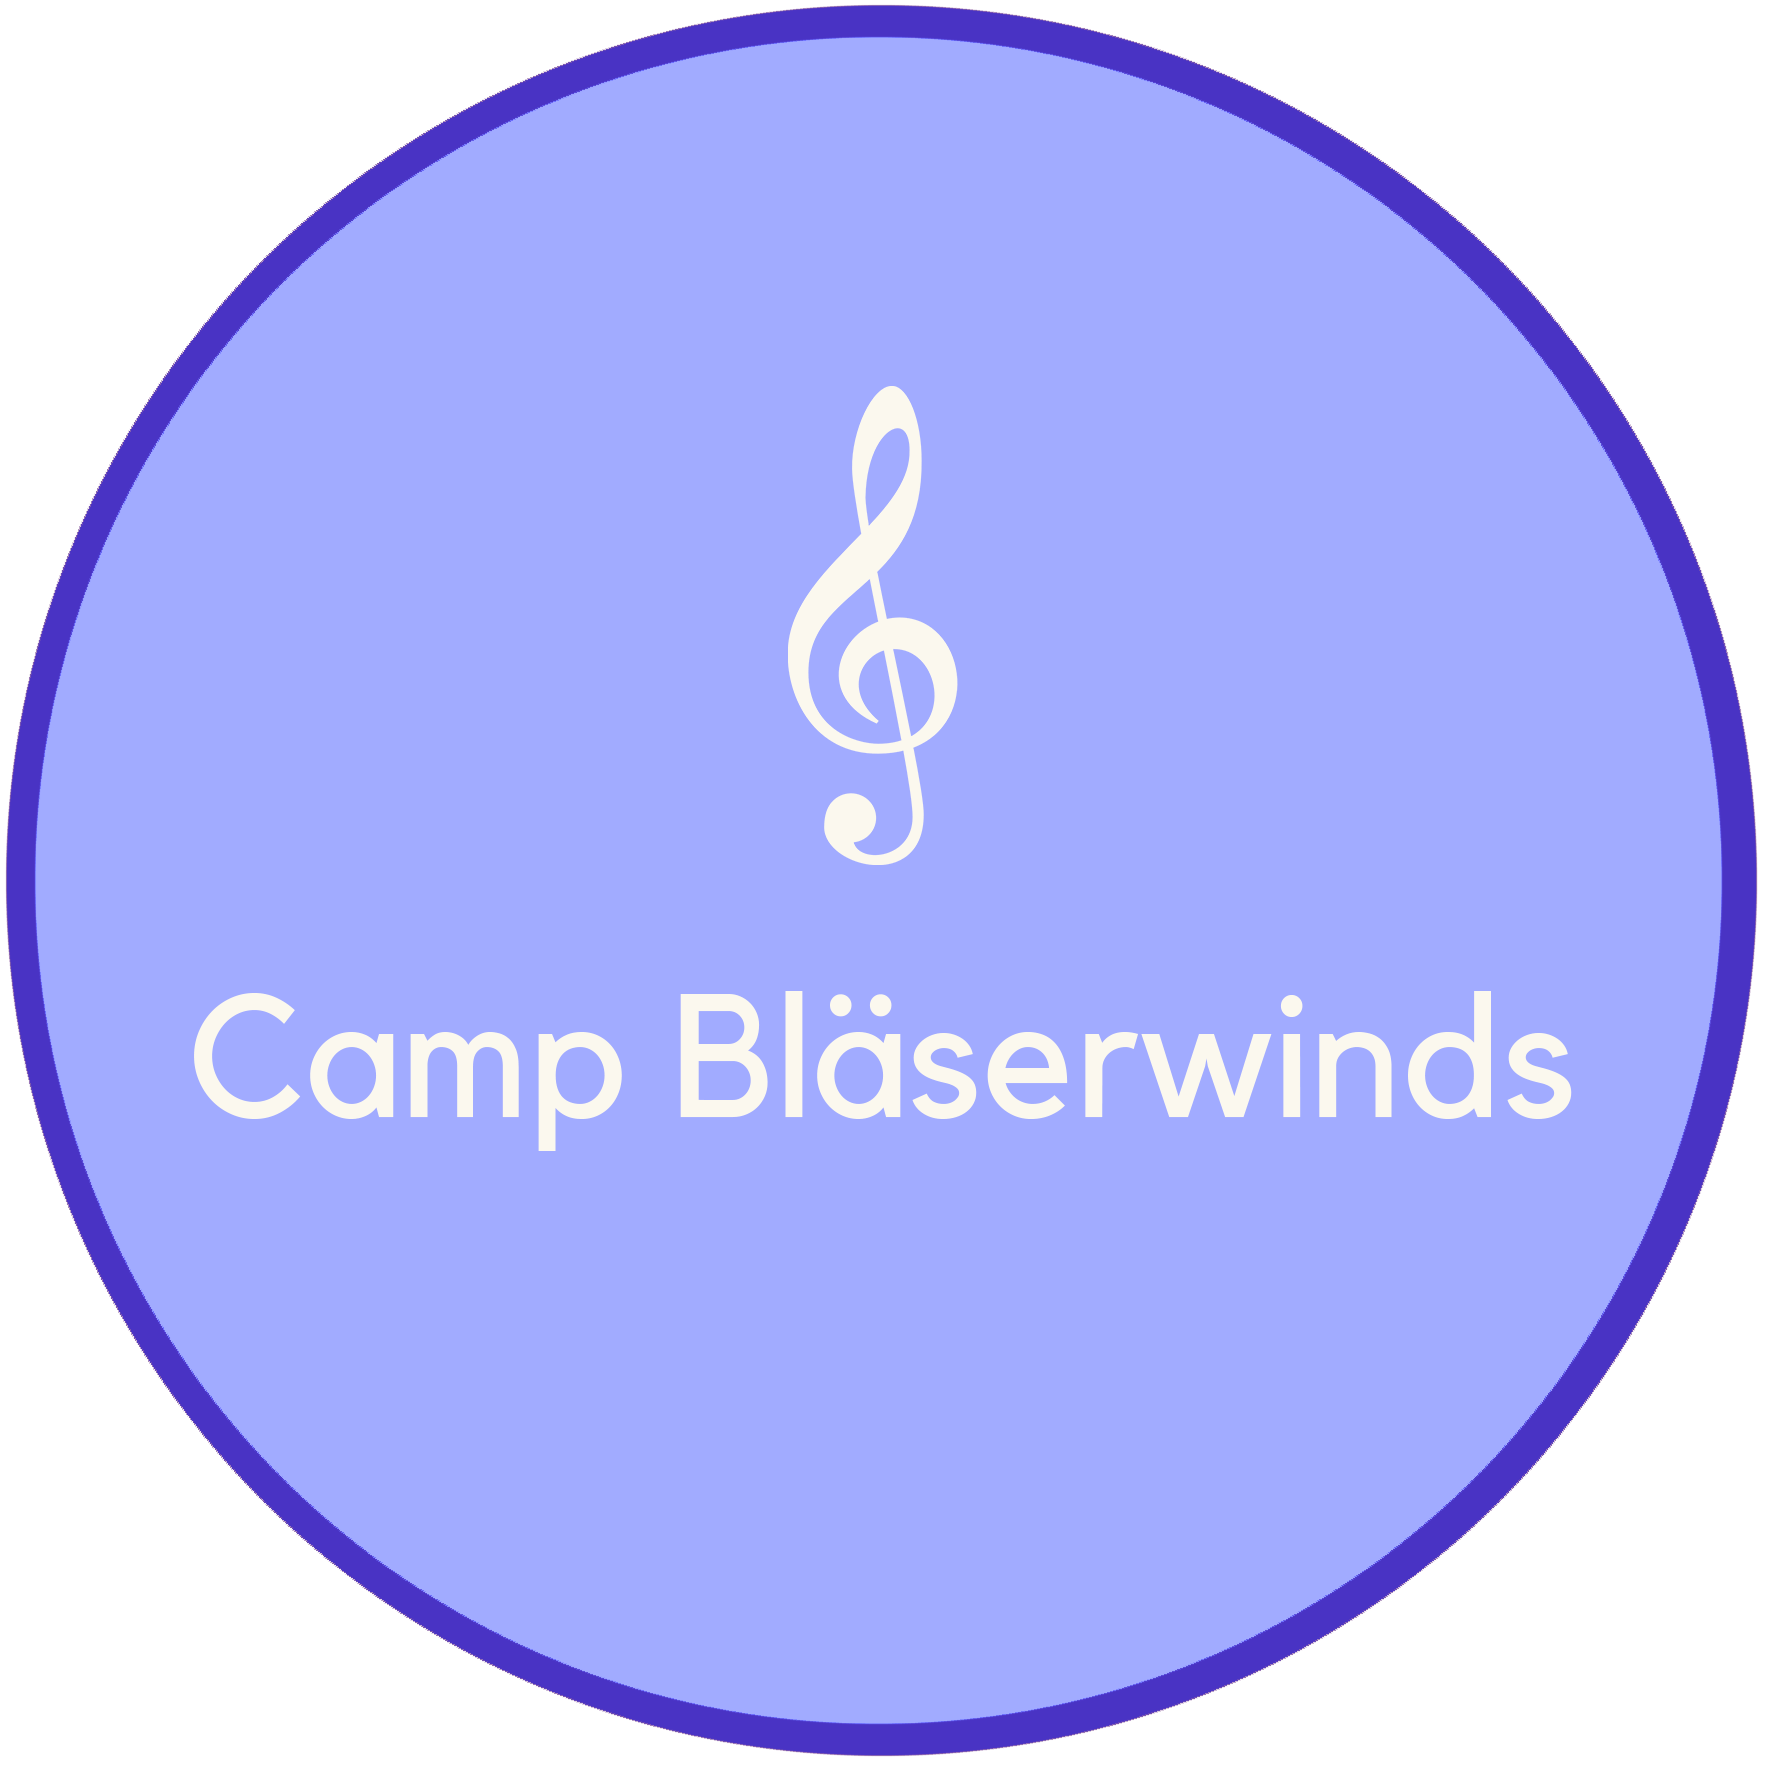 Camp Bläserwinds